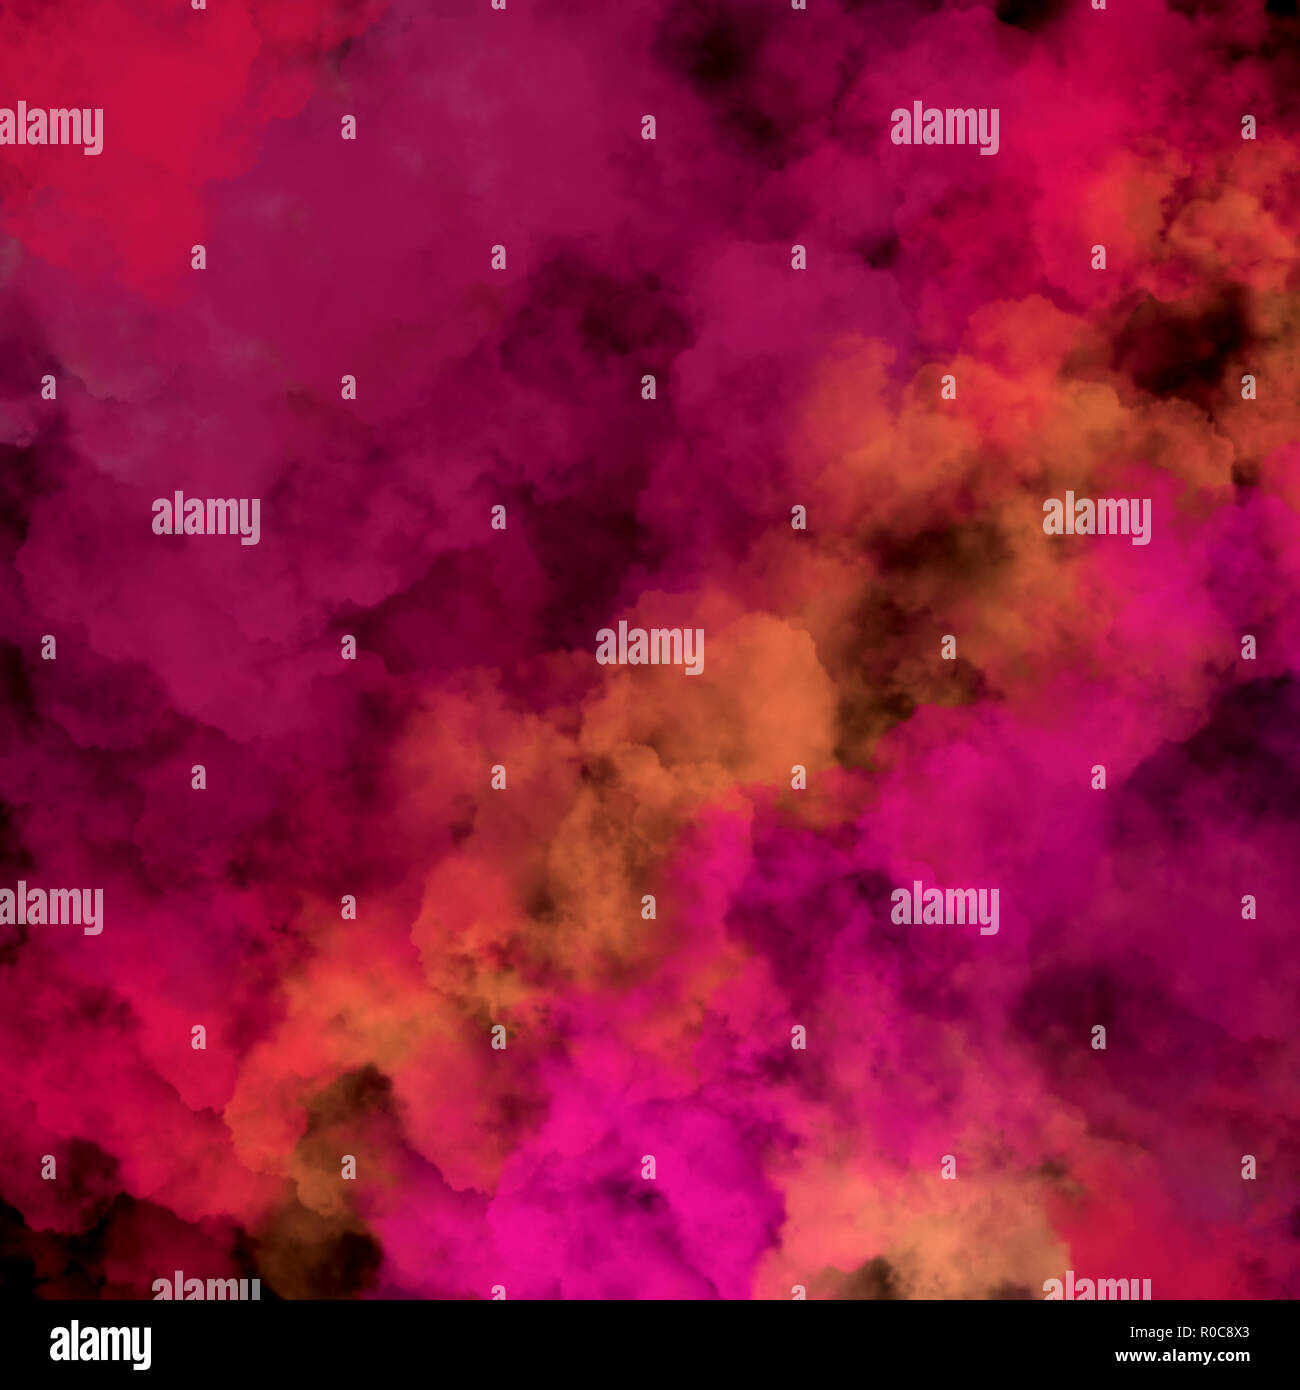 Designed Wallpaper With Vibrant Colors Abstract Color Powder Splatted Colorful Powder Splash For Backgrounds Artwork Wall Art Poster Interior Stock Photo Alamy